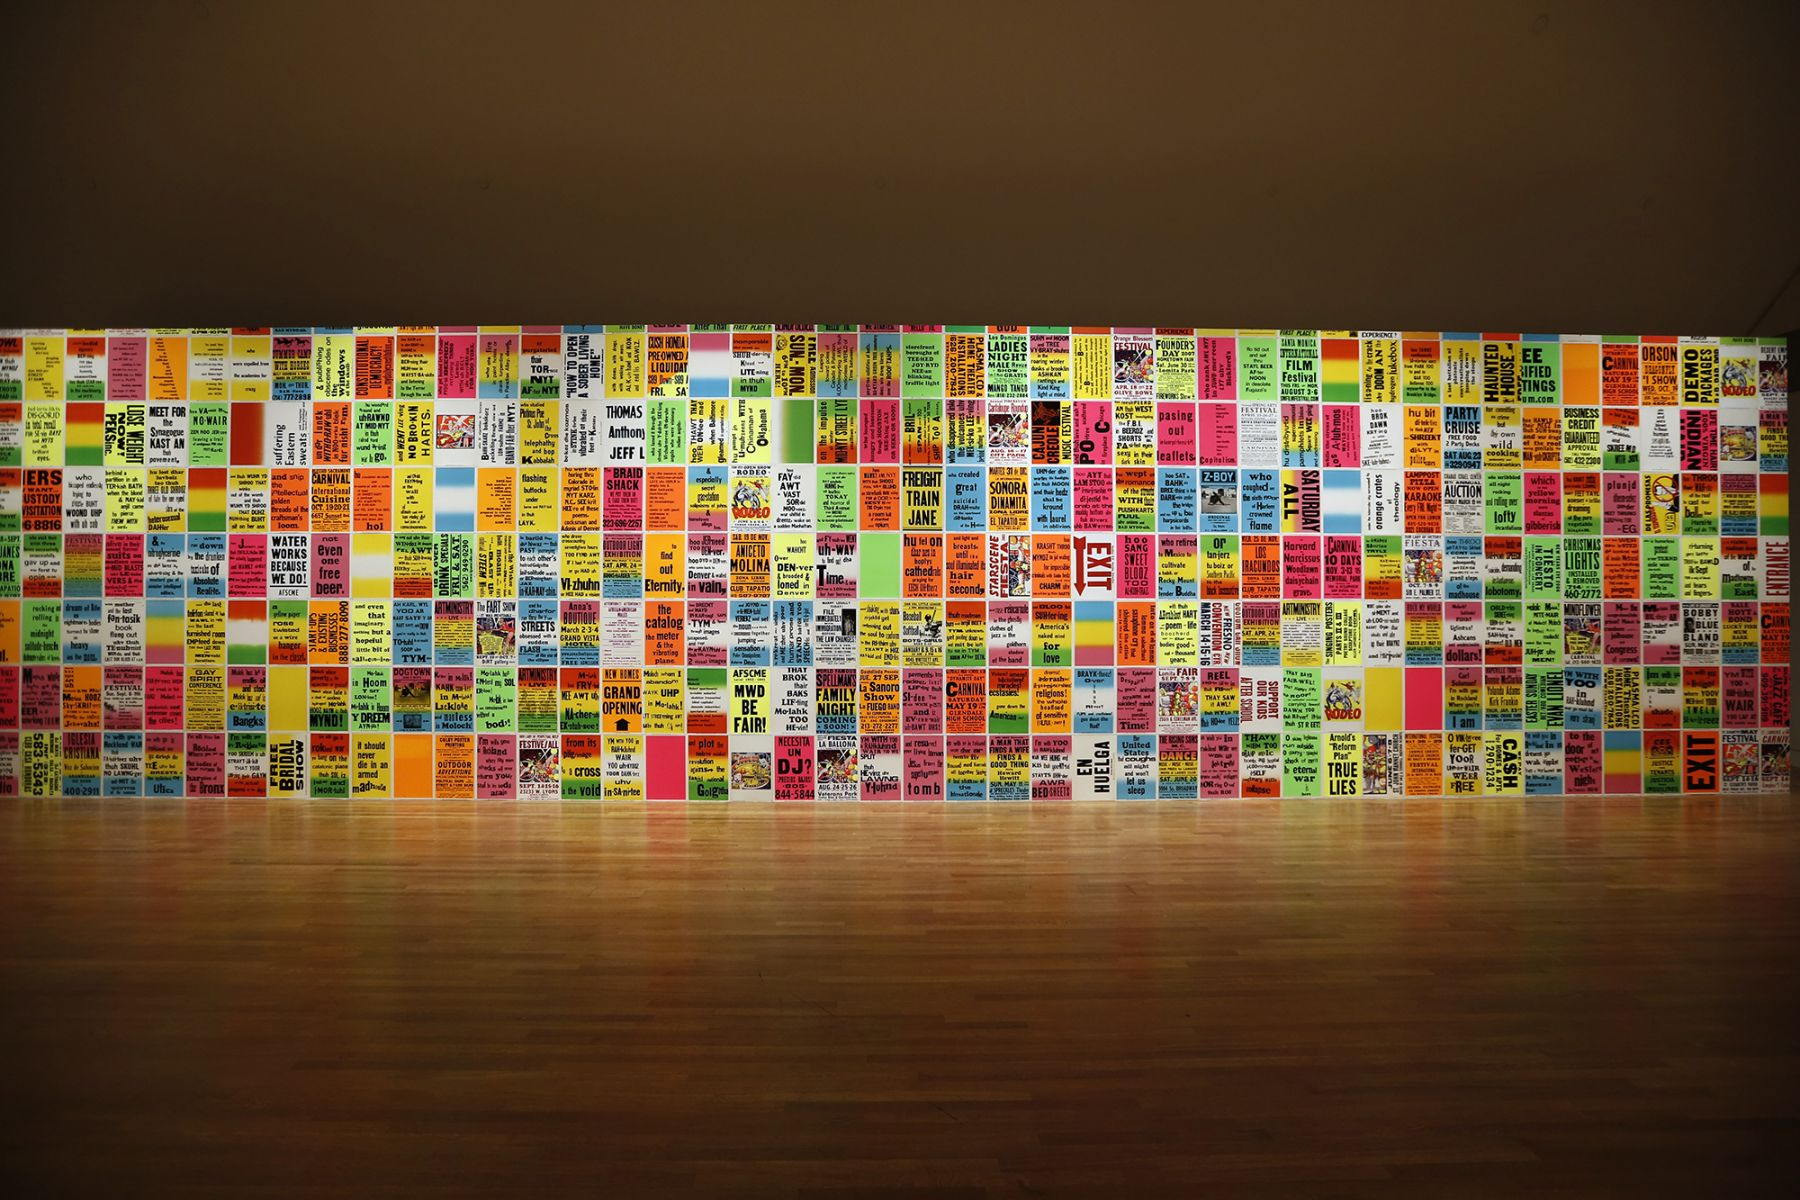 Installation view, The Singing Posters: Poetry Sound Collage Sculpture Book, Skirball Culture Center, Los Angeles, 2015